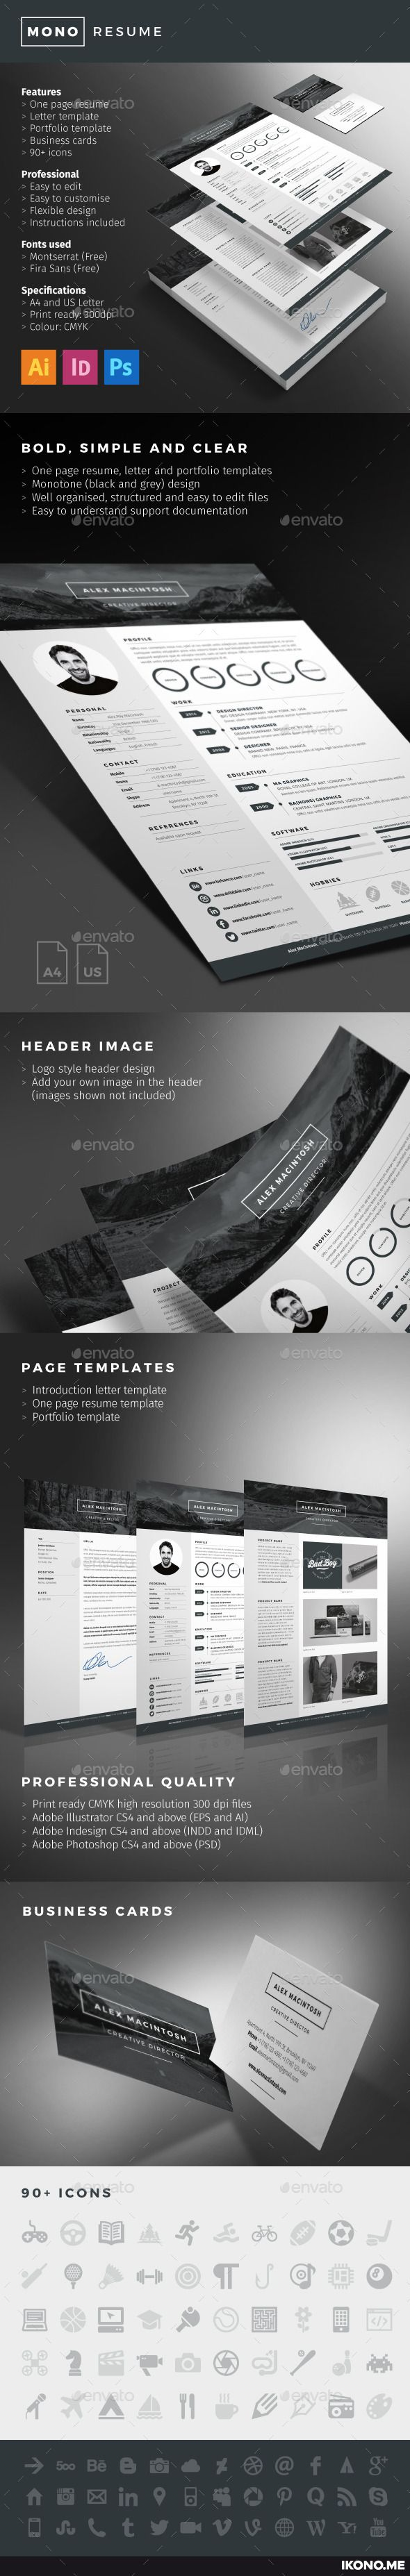 Mono Resume template by www.ikono.me 3 page templates, 90+ icons, Adobe Indesign, illustrator and photoshop files. #resume #template #design